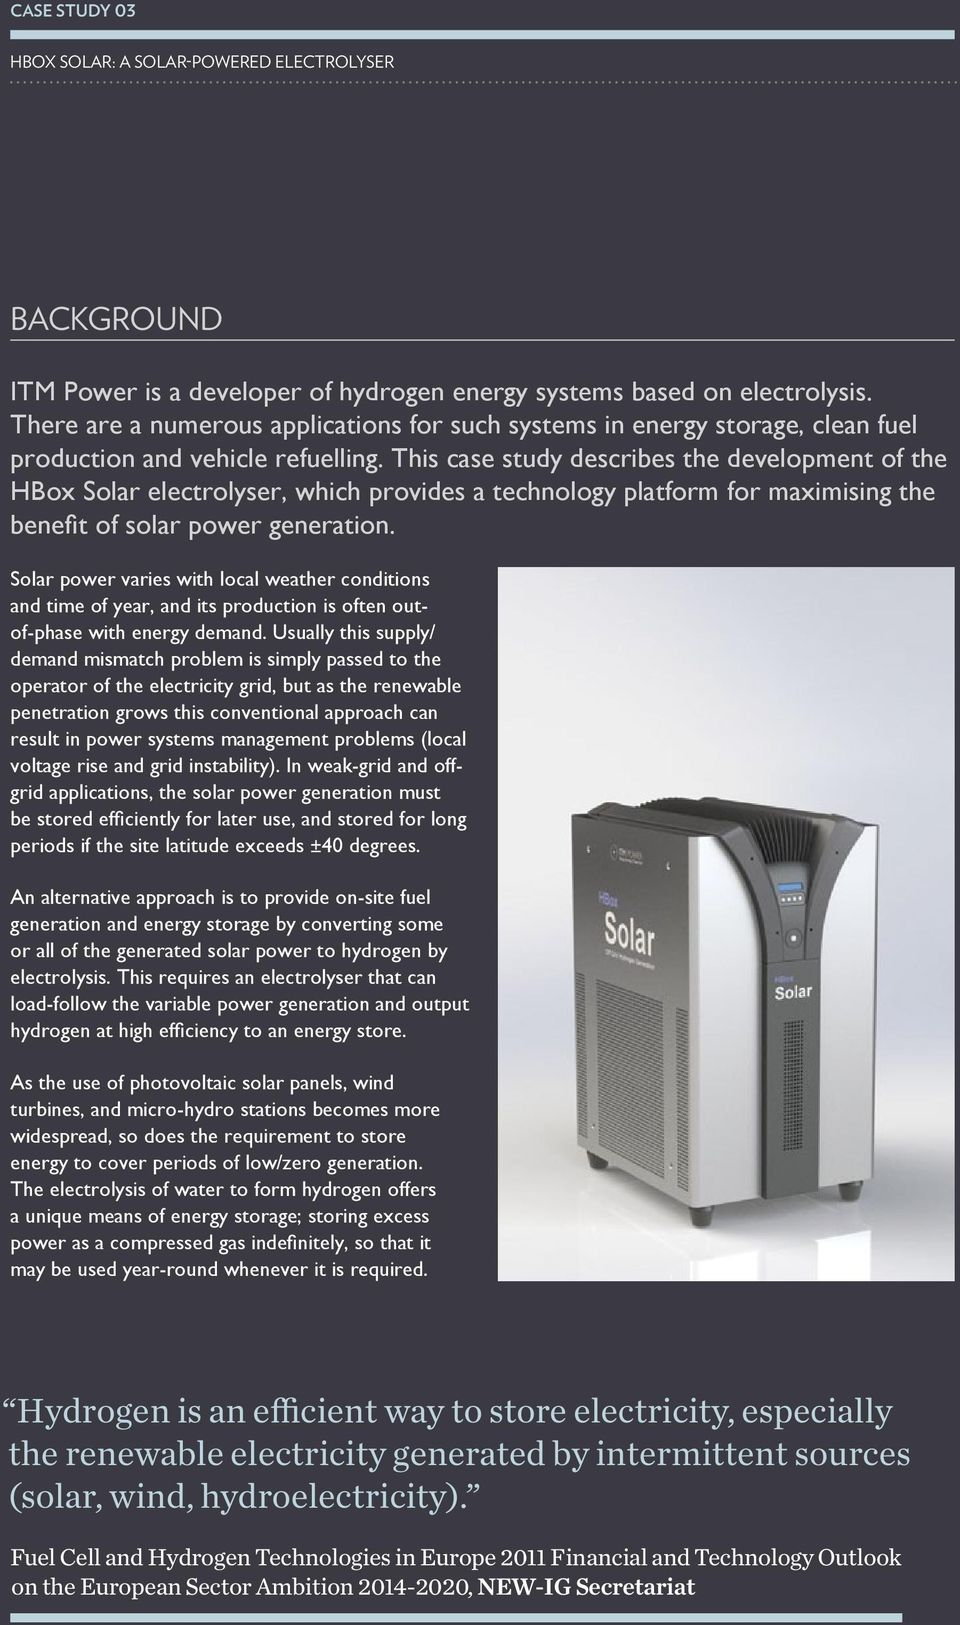 This case study describes the development of the HBox Solar electrolyser, which provides a technology platform for maximising the benefit of solar power generation.